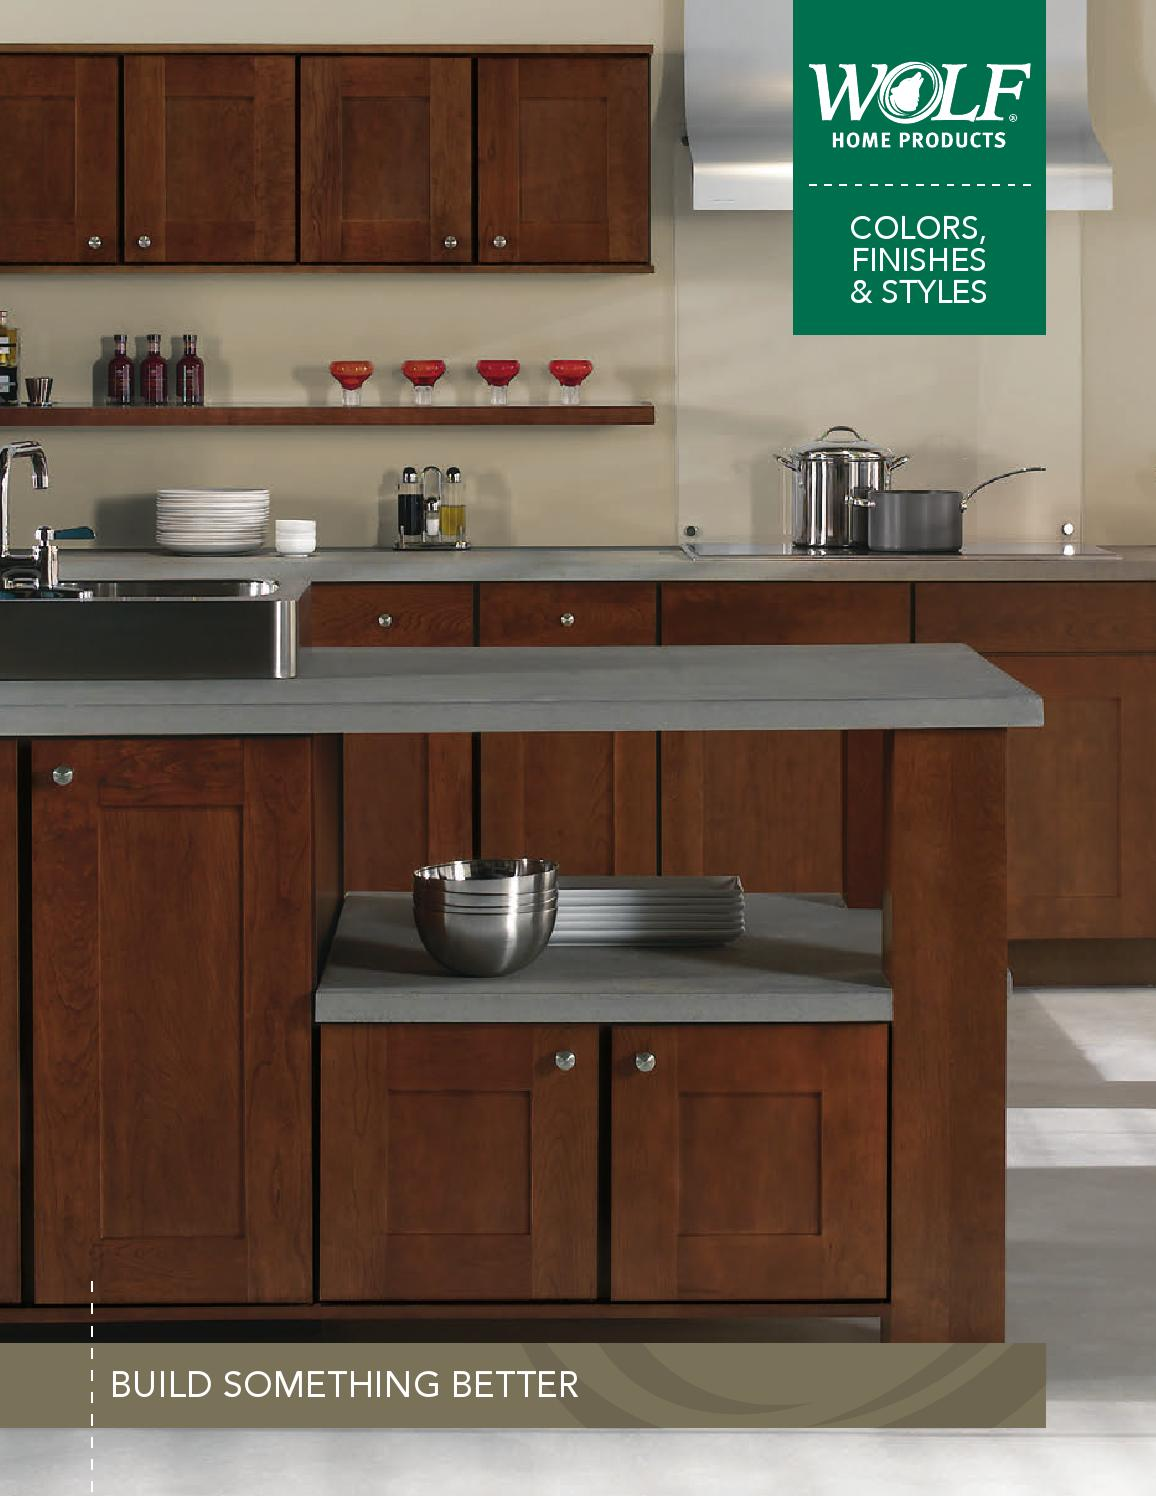 Magnificent Wolf Designer Cabinets Styles Colors Brochure 042115 V1 Download Free Architecture Designs Scobabritishbridgeorg